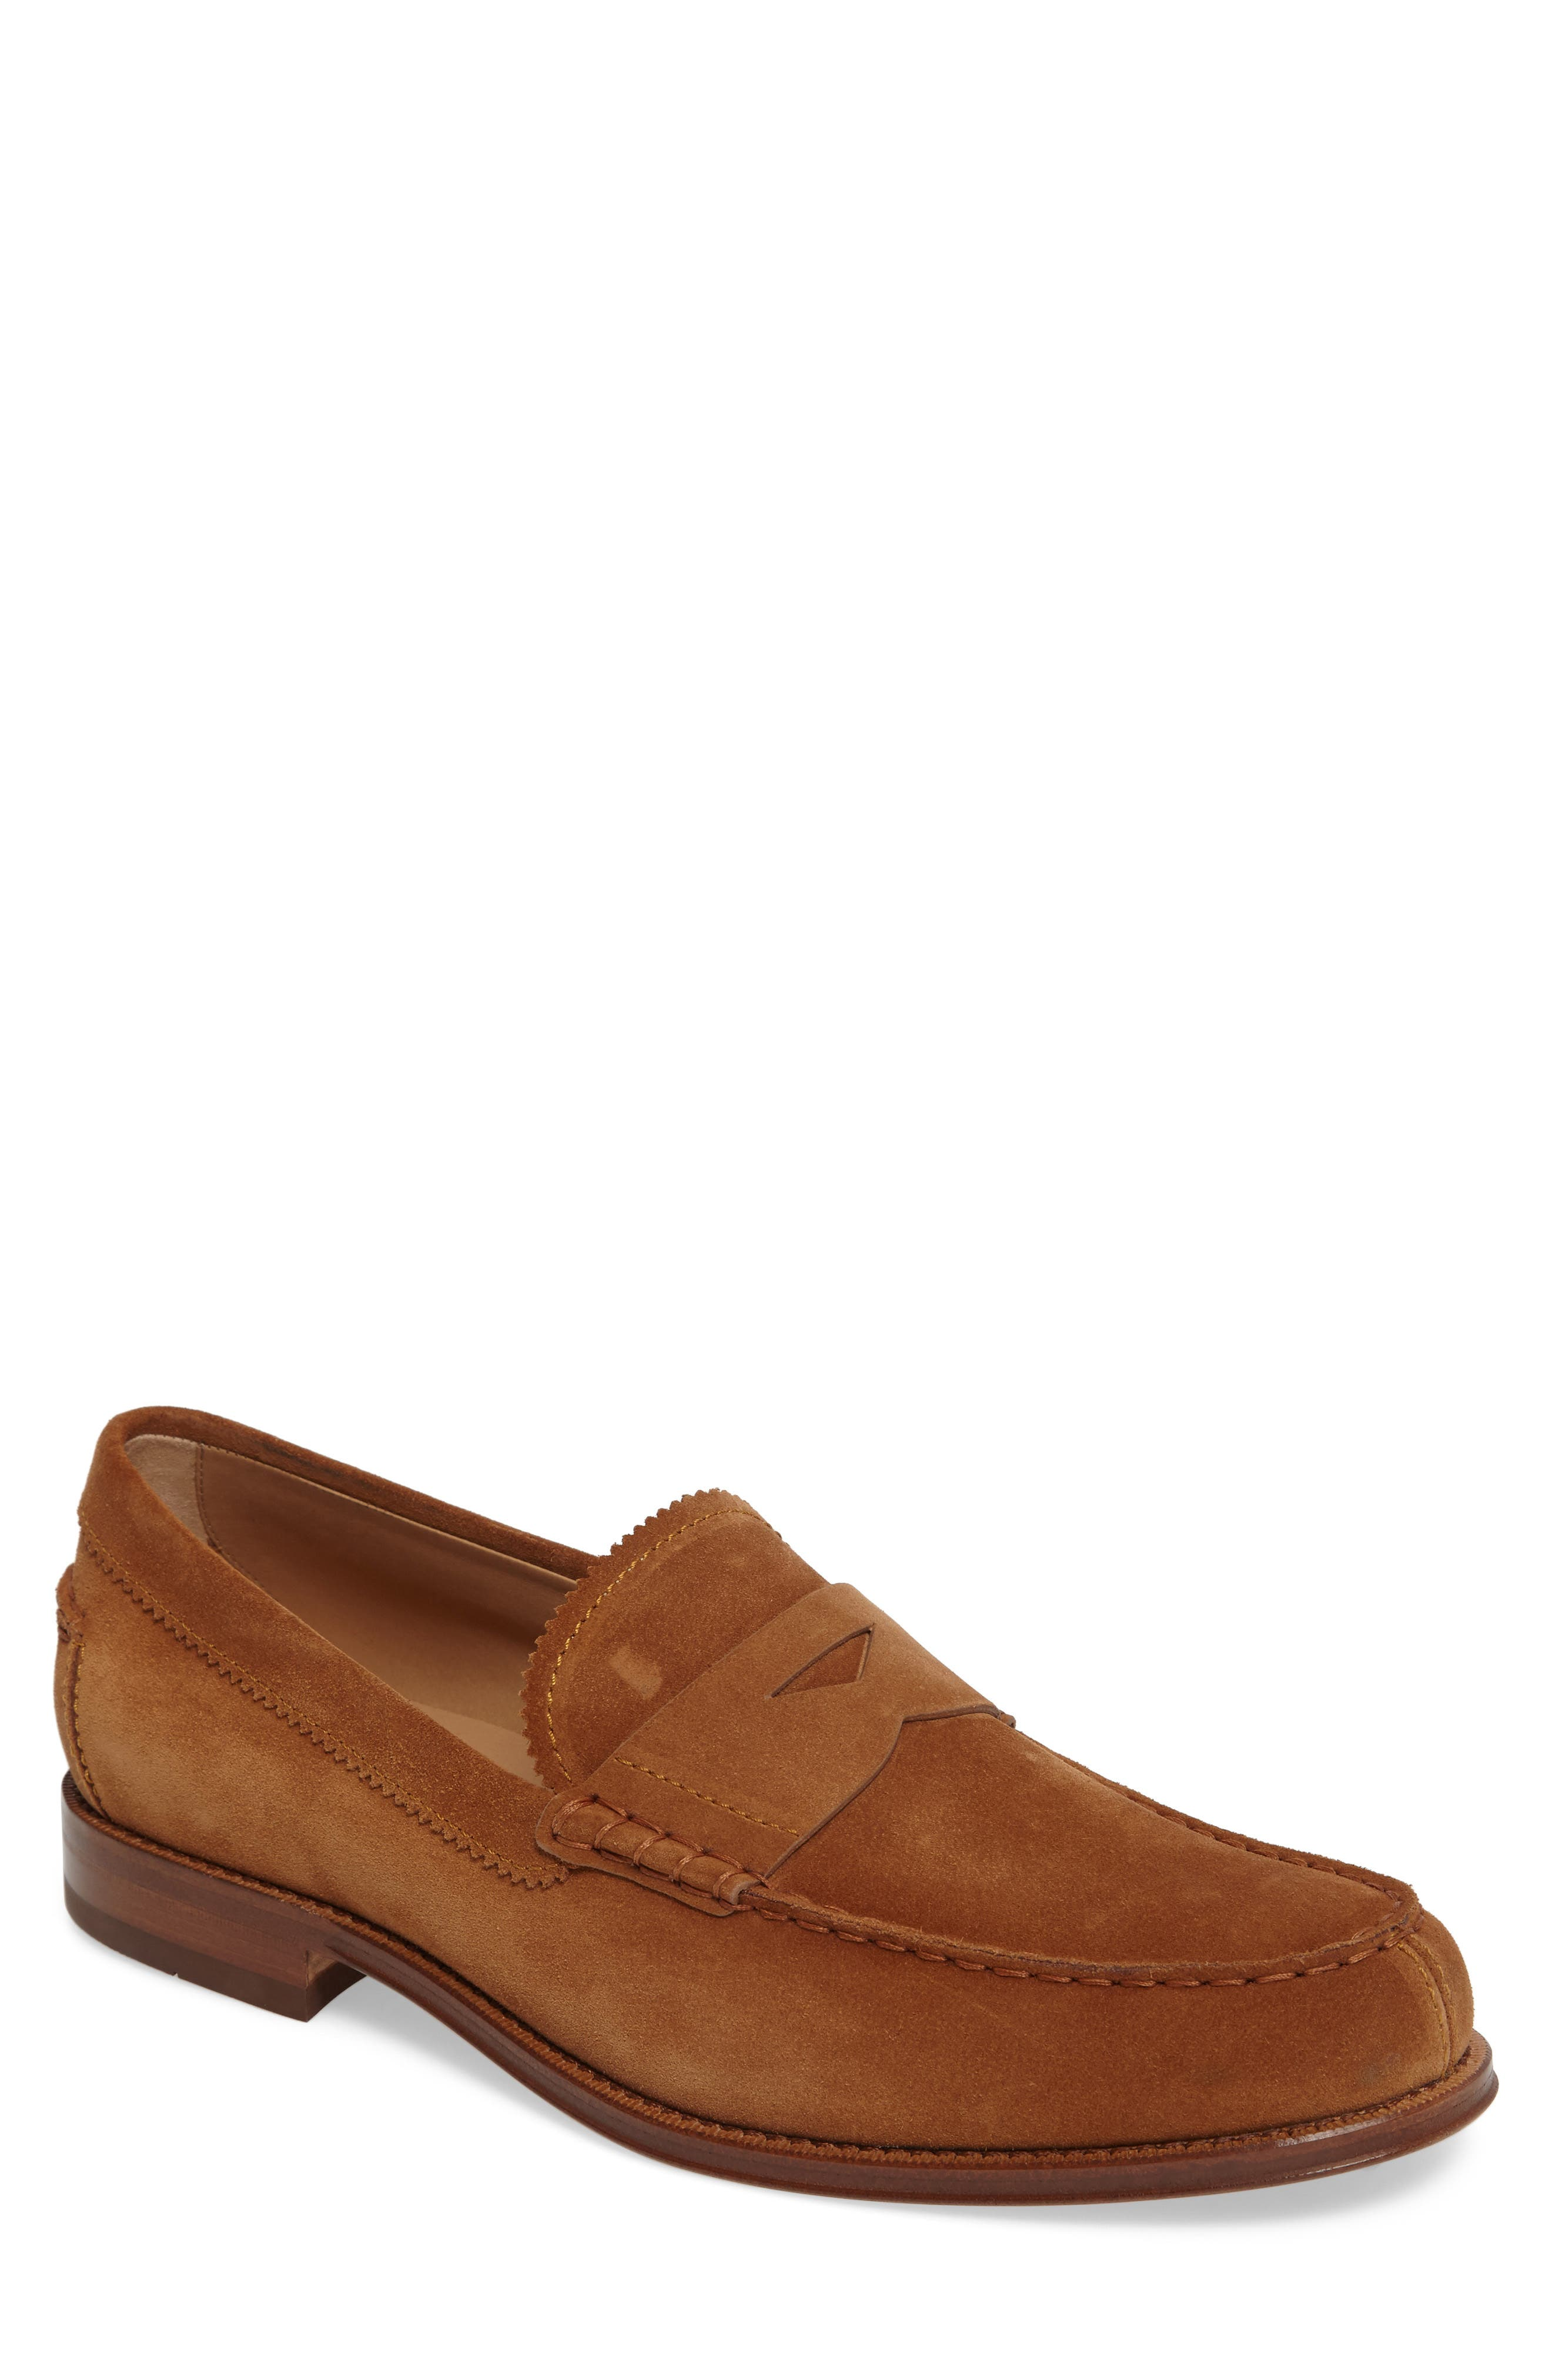 Main Image - Tod's Suede Penny Loafer (Men)